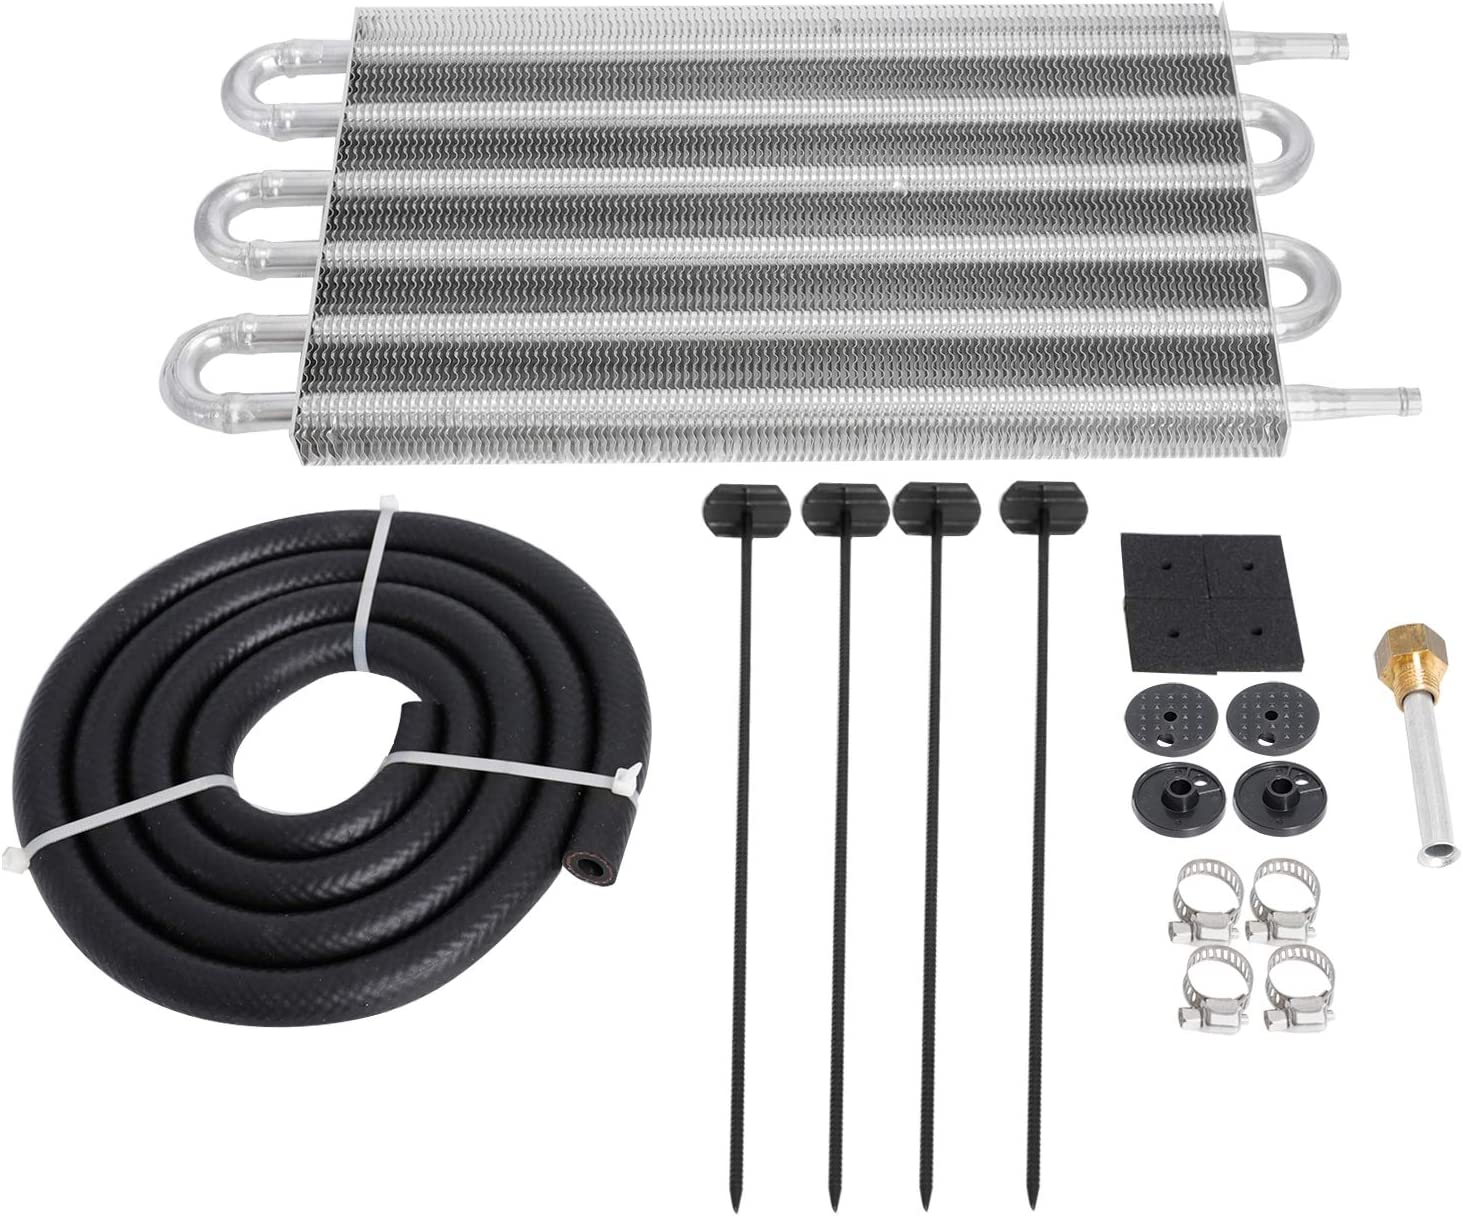 SUPERFASTRACING 6 Row Transmission Oil Cooler /& Mounting Kit Radiator Remote Aluminum